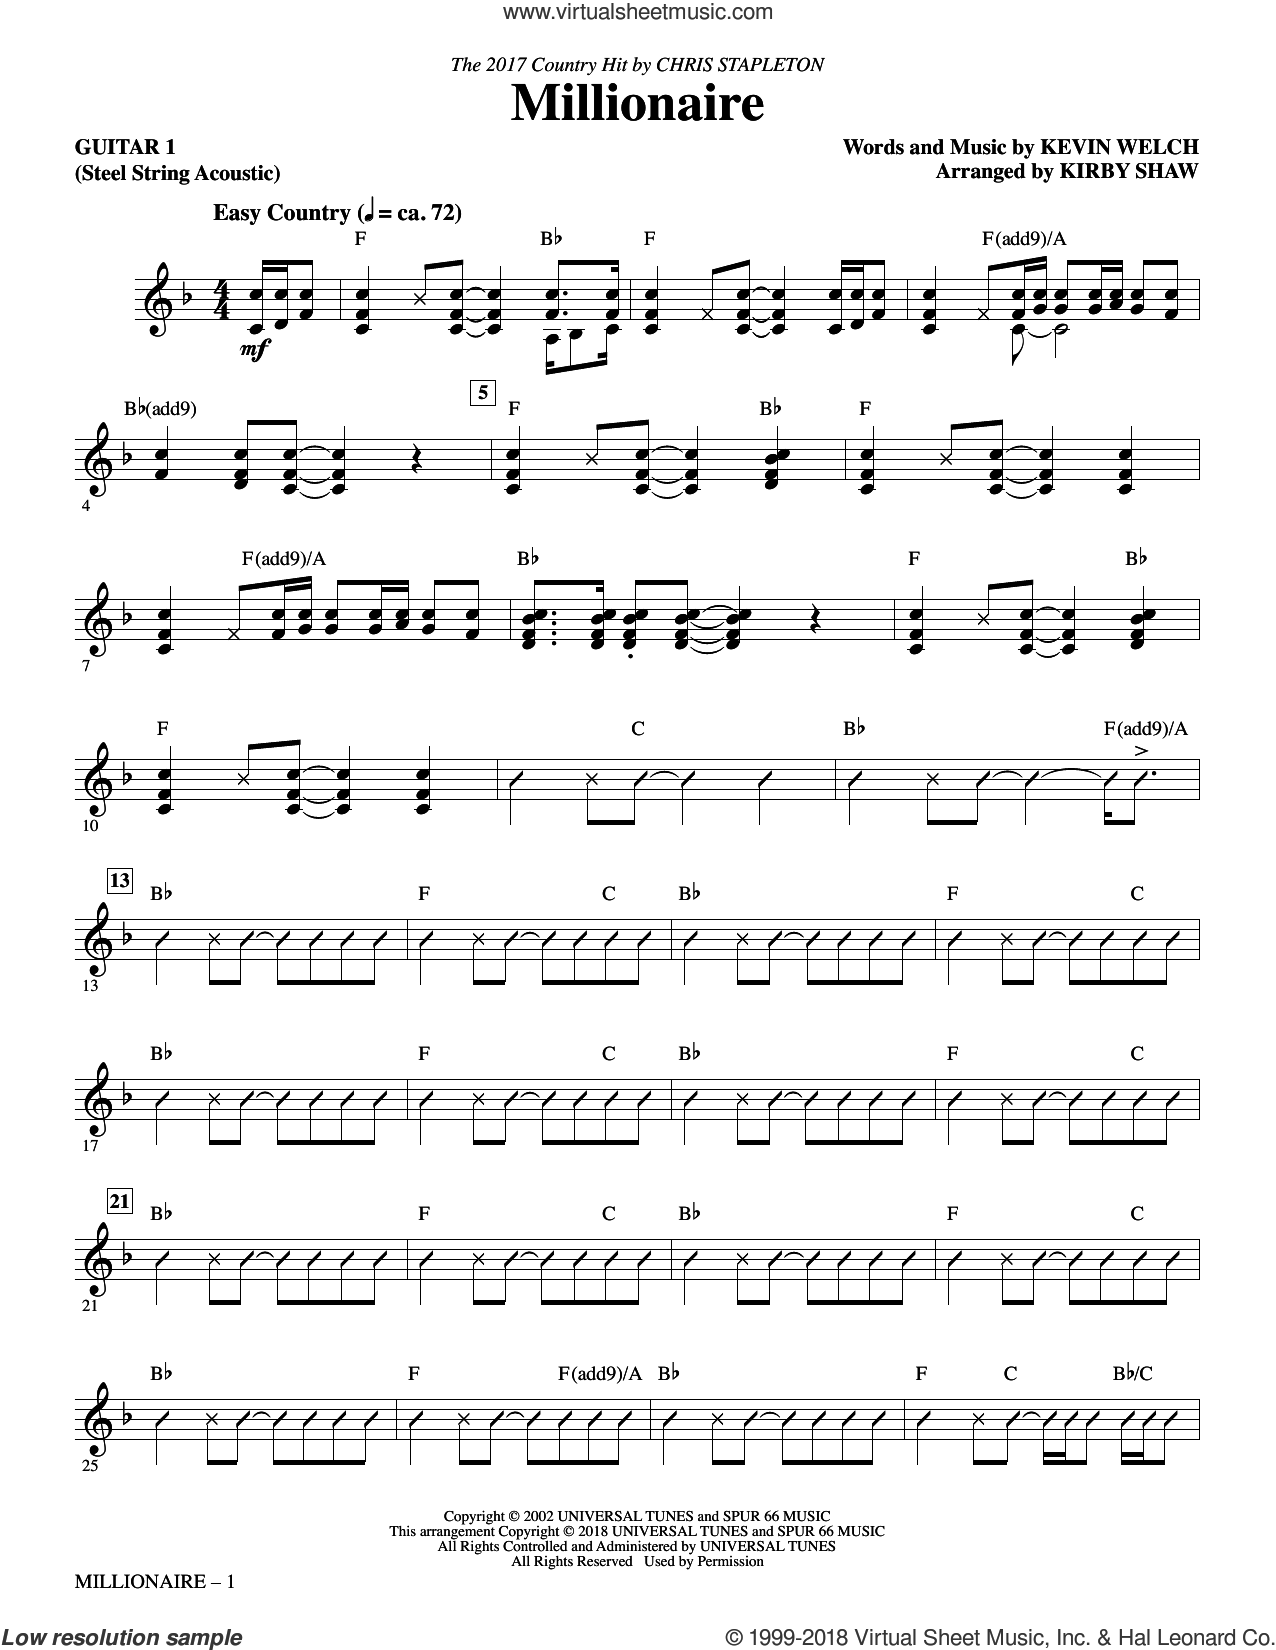 Millionaire (complete set of parts) sheet music for orchestra/band by Kirby Shaw, Chris Stapleton and Kevin Welch, intermediate skill level